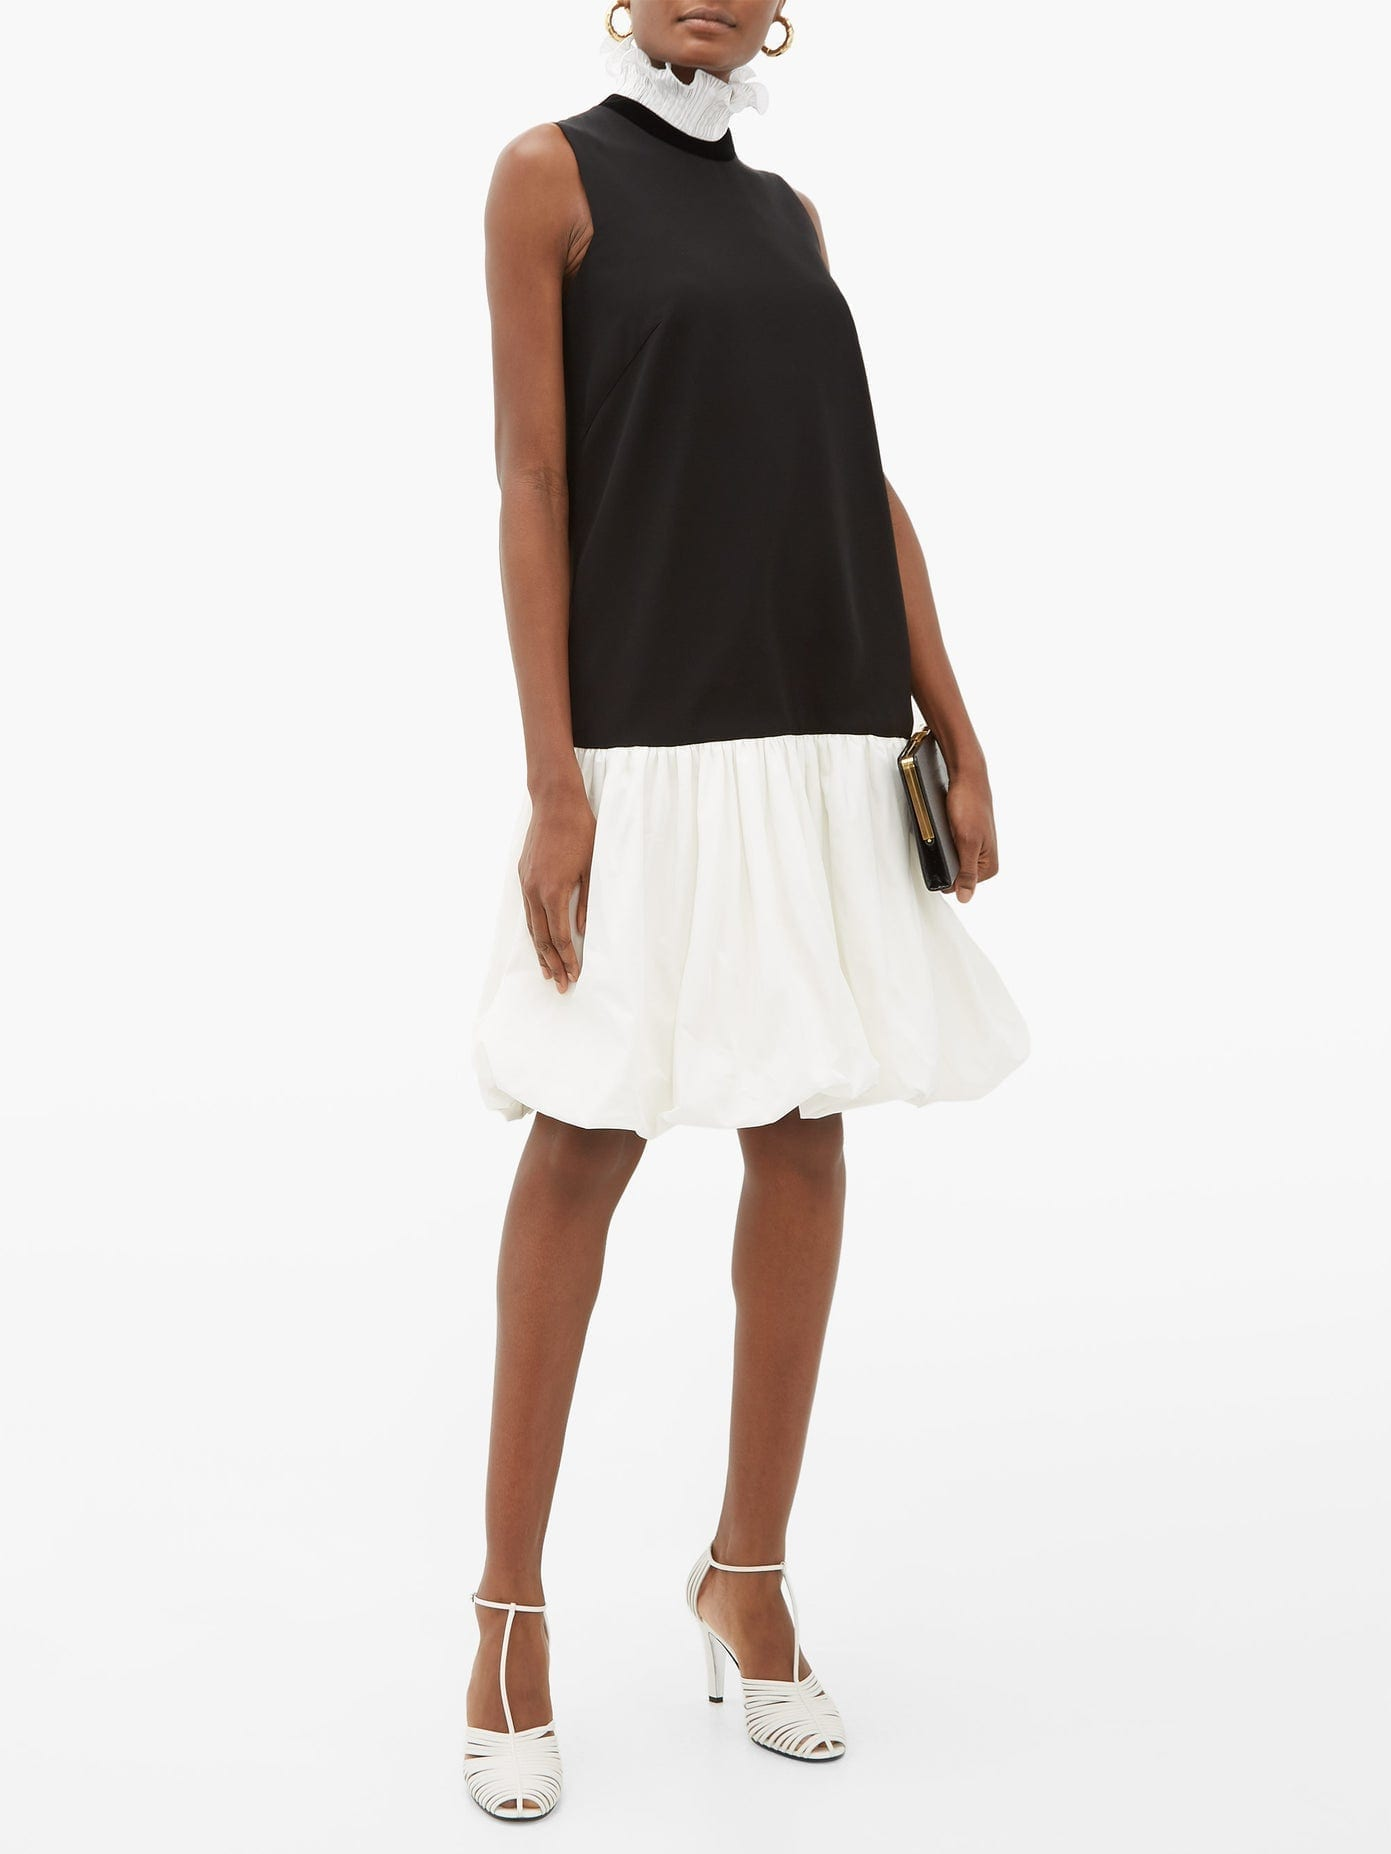 GIVENCHY Drop-Waisted Bubble-Hem Dress